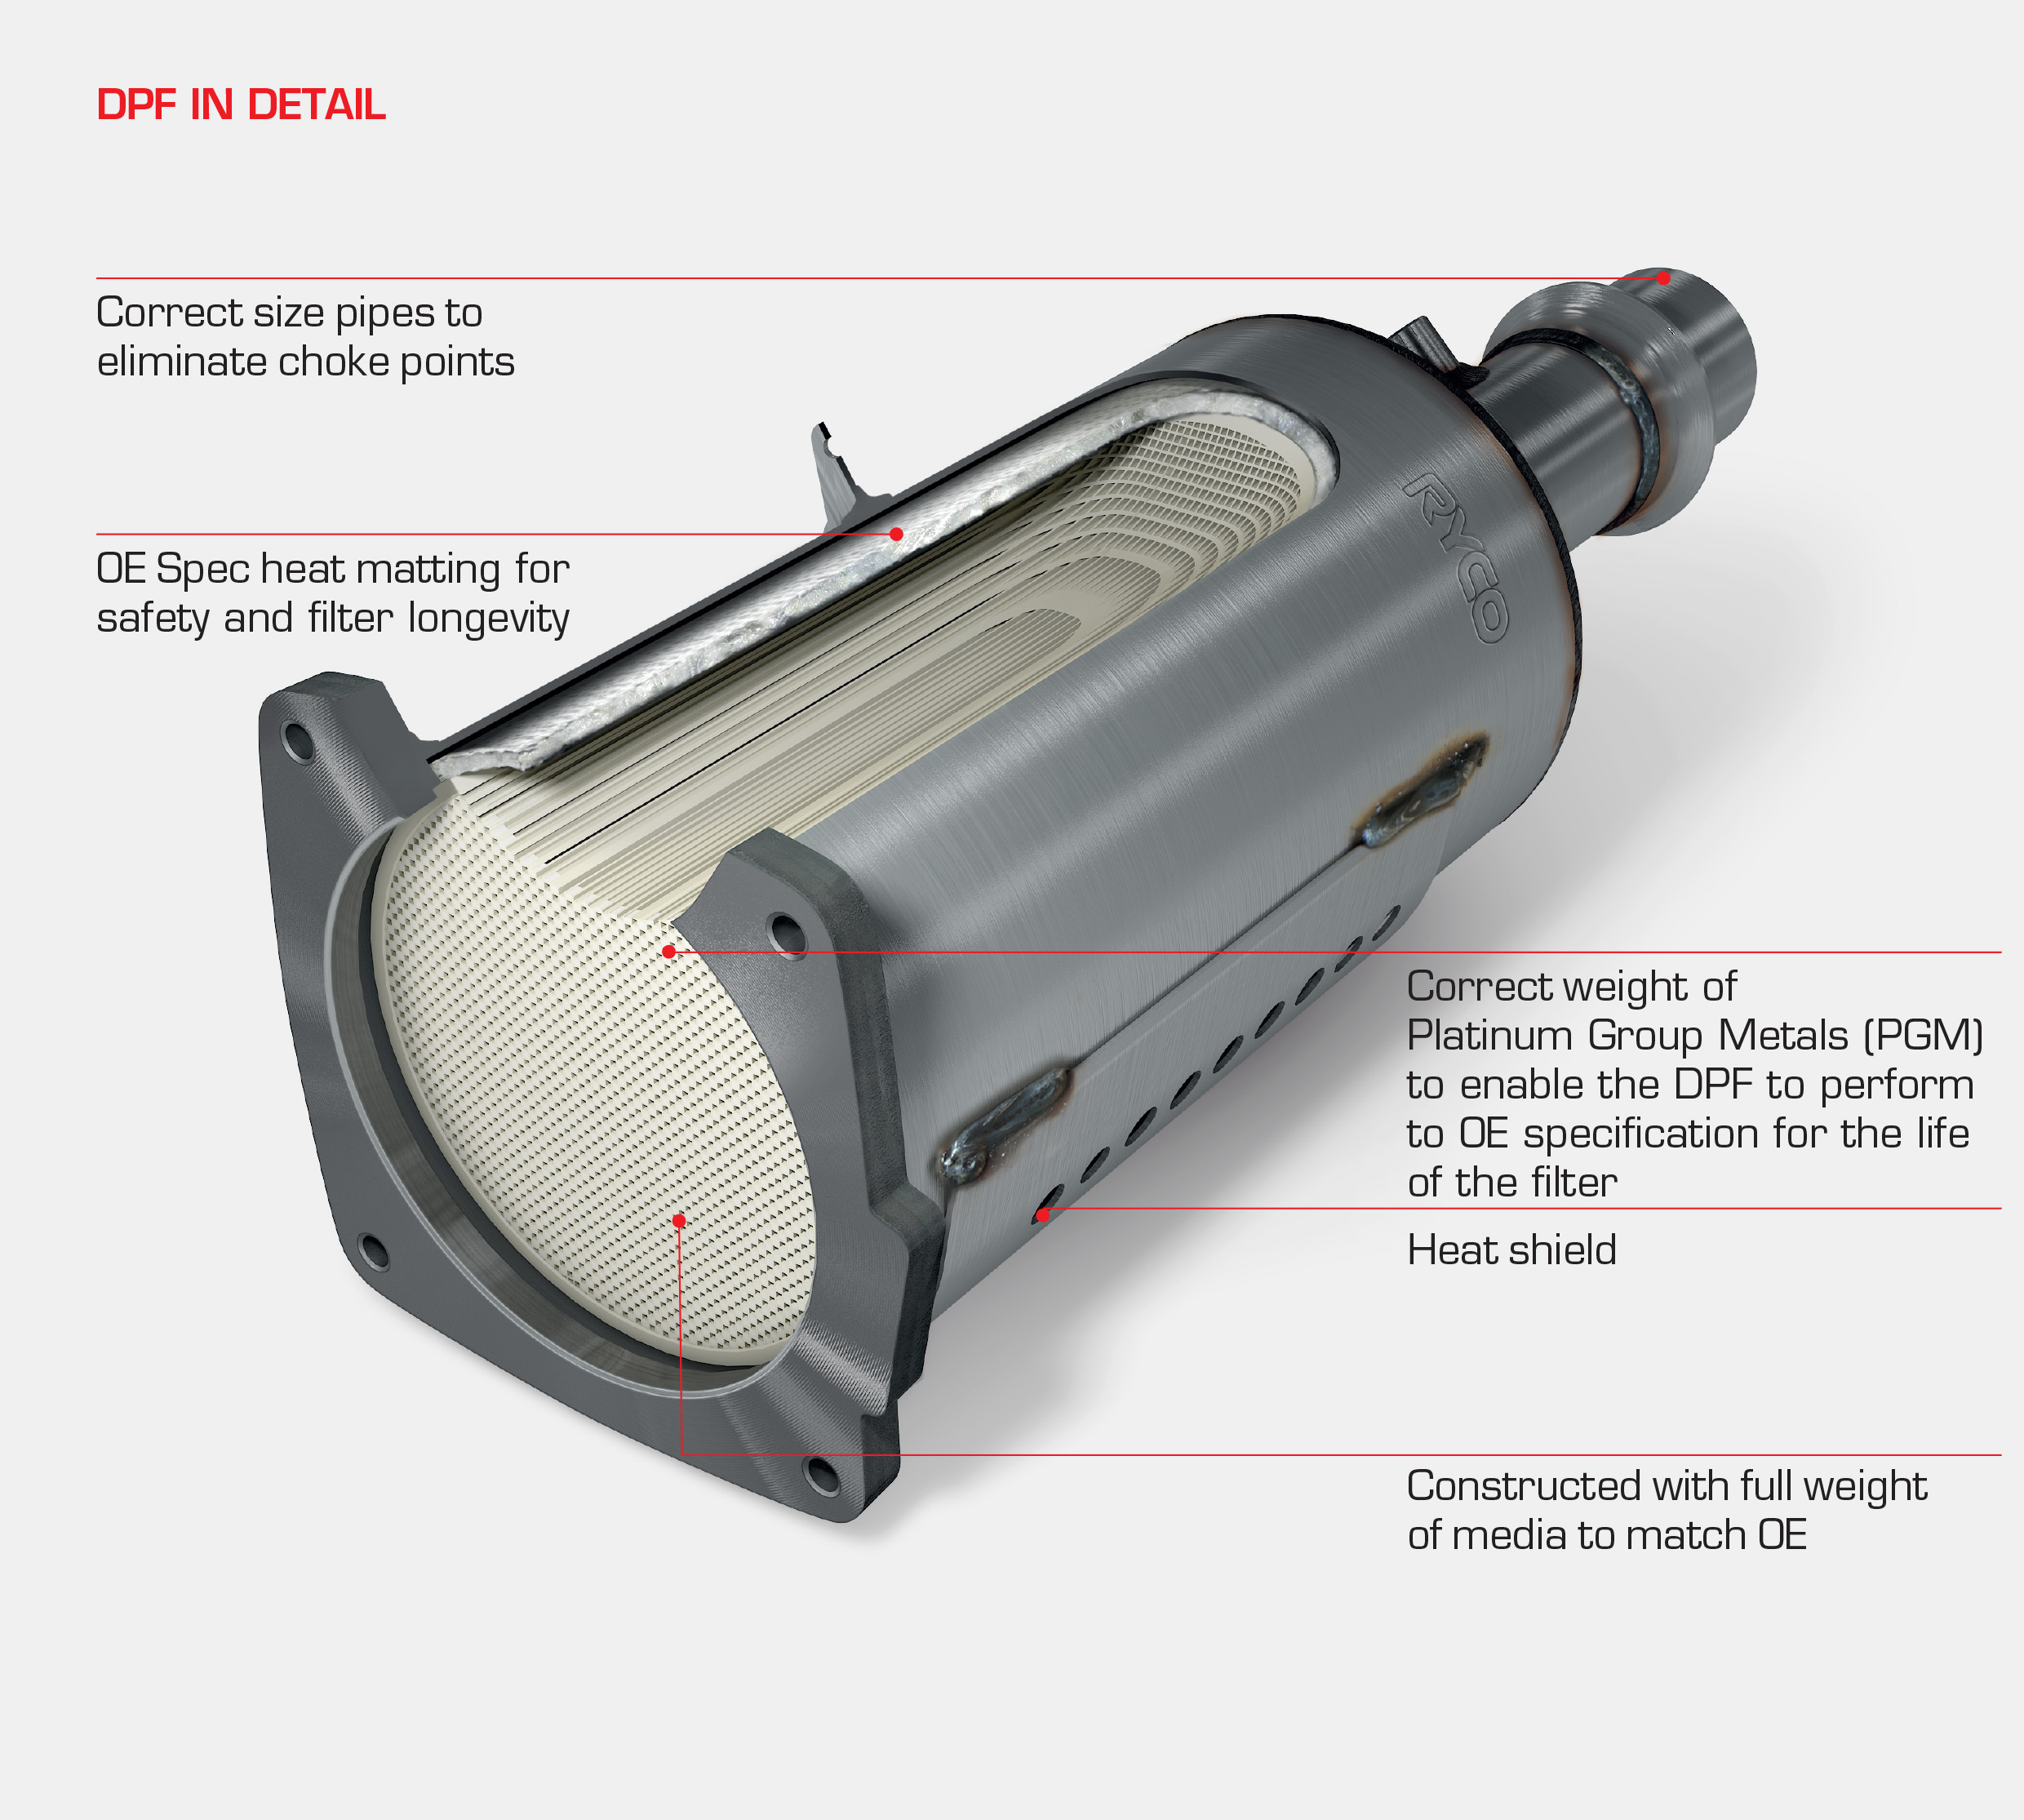 dpf detail graphic